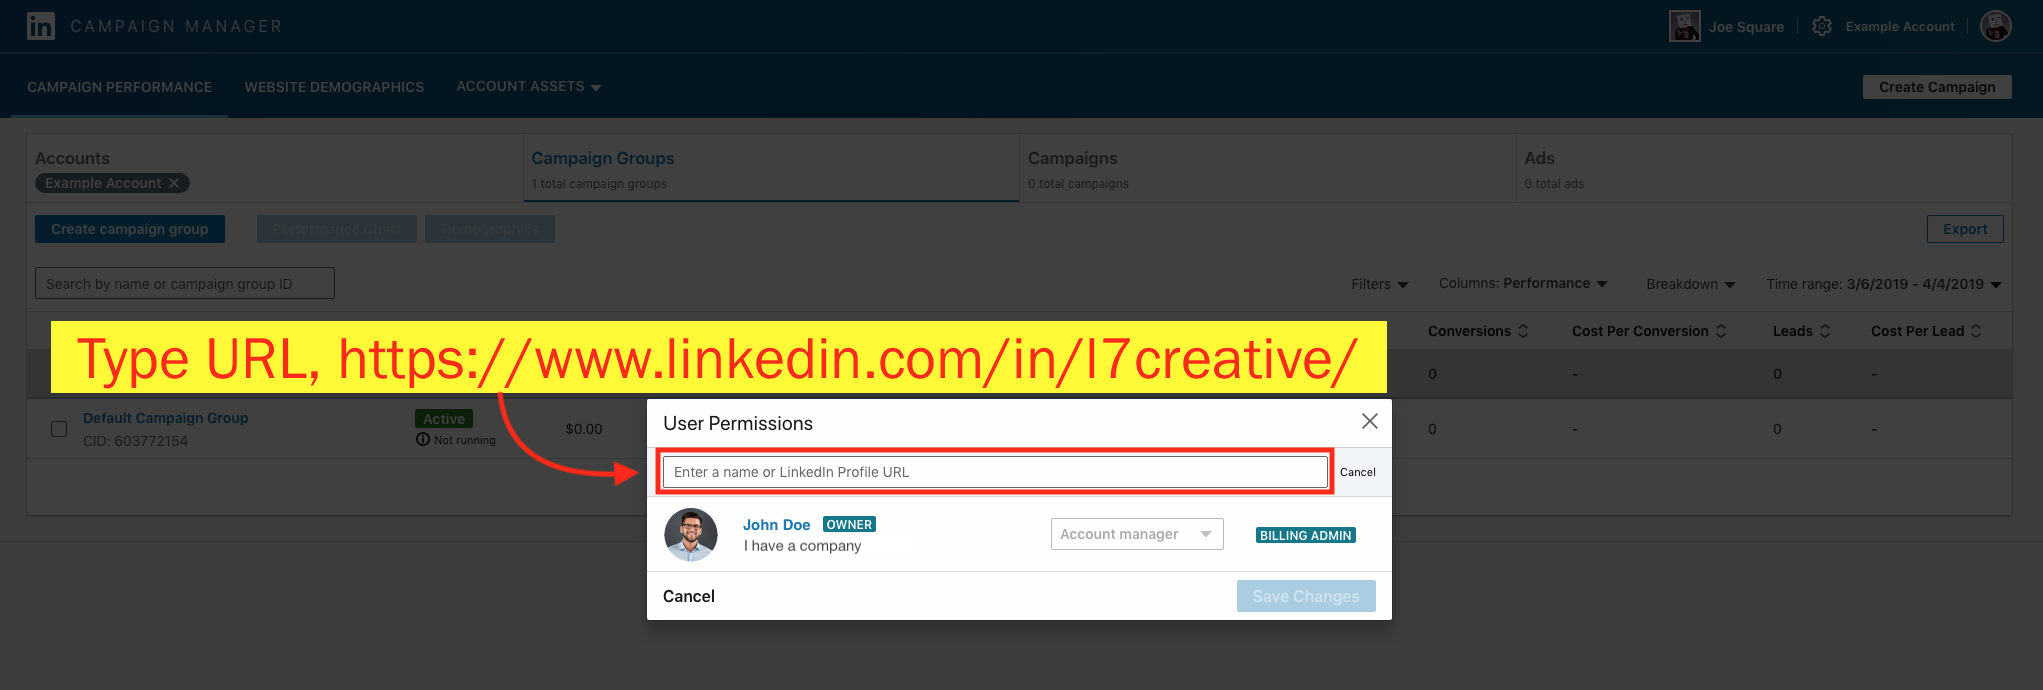 Add a Campaign Manager to Your LinkedIn Ad Account - Step 6 Screenshot